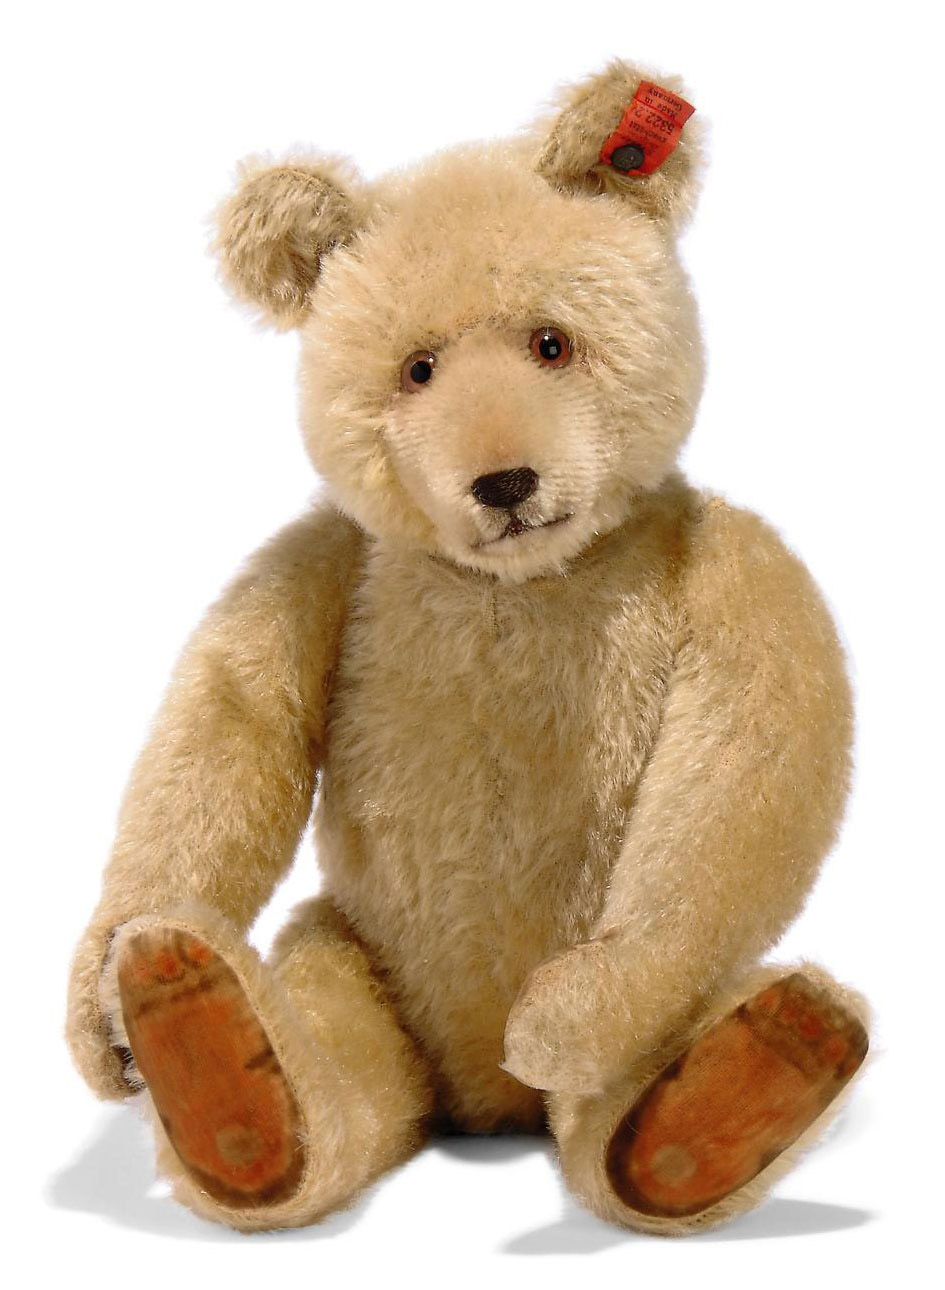 A STEIFF DICKY TEDDY BEAR, (5322,2), jointed, blonde mohair, brown and black glass eyes, inset short mohair muzzle, brown stitching, printed velvet pads, squeaker and FF button with full red cloth tag, 1930s --14in. (35.5cm.) high (slight thinning, wear and fading, red tag a little creased)